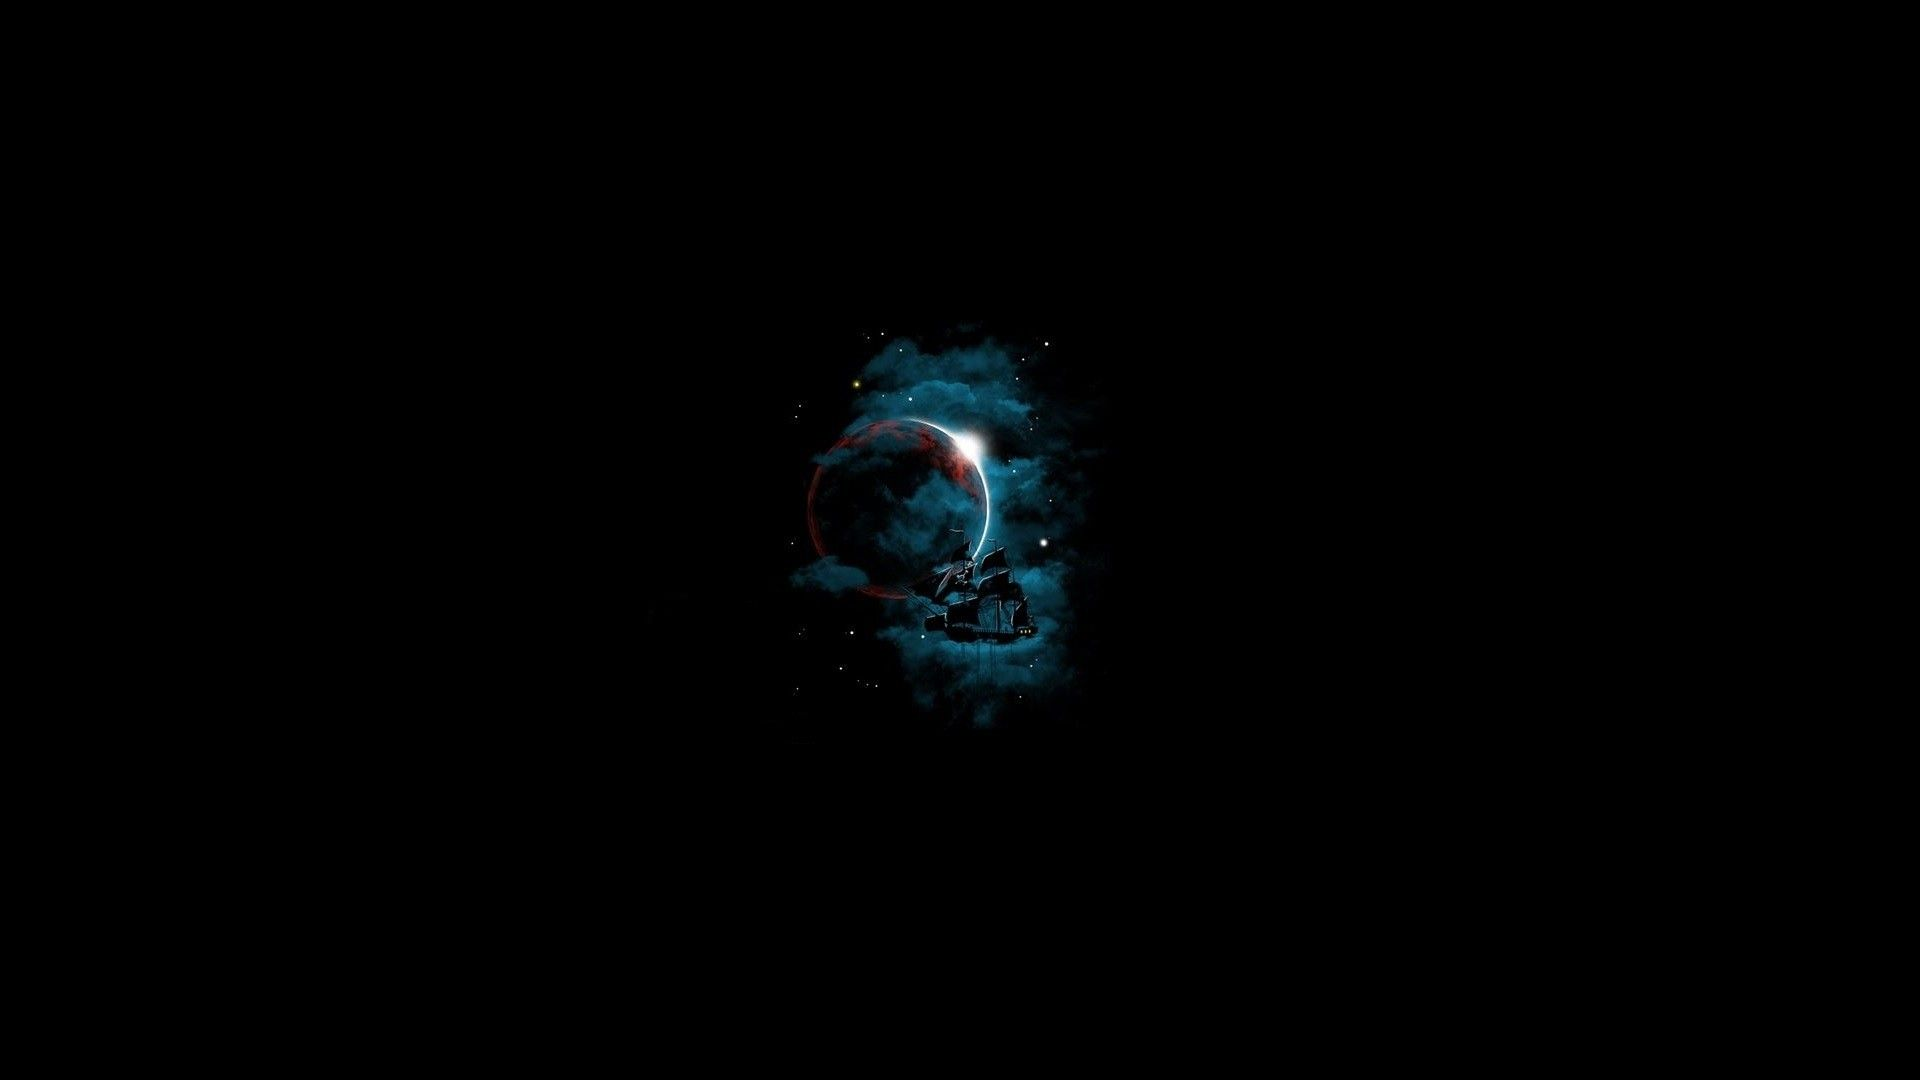 Dark Black Background Simple Background Digital Art Minimalism Fantasy Art Wal Minimalist Desktop Wallpaper Photography Wallpaper Desktop Wallpaper